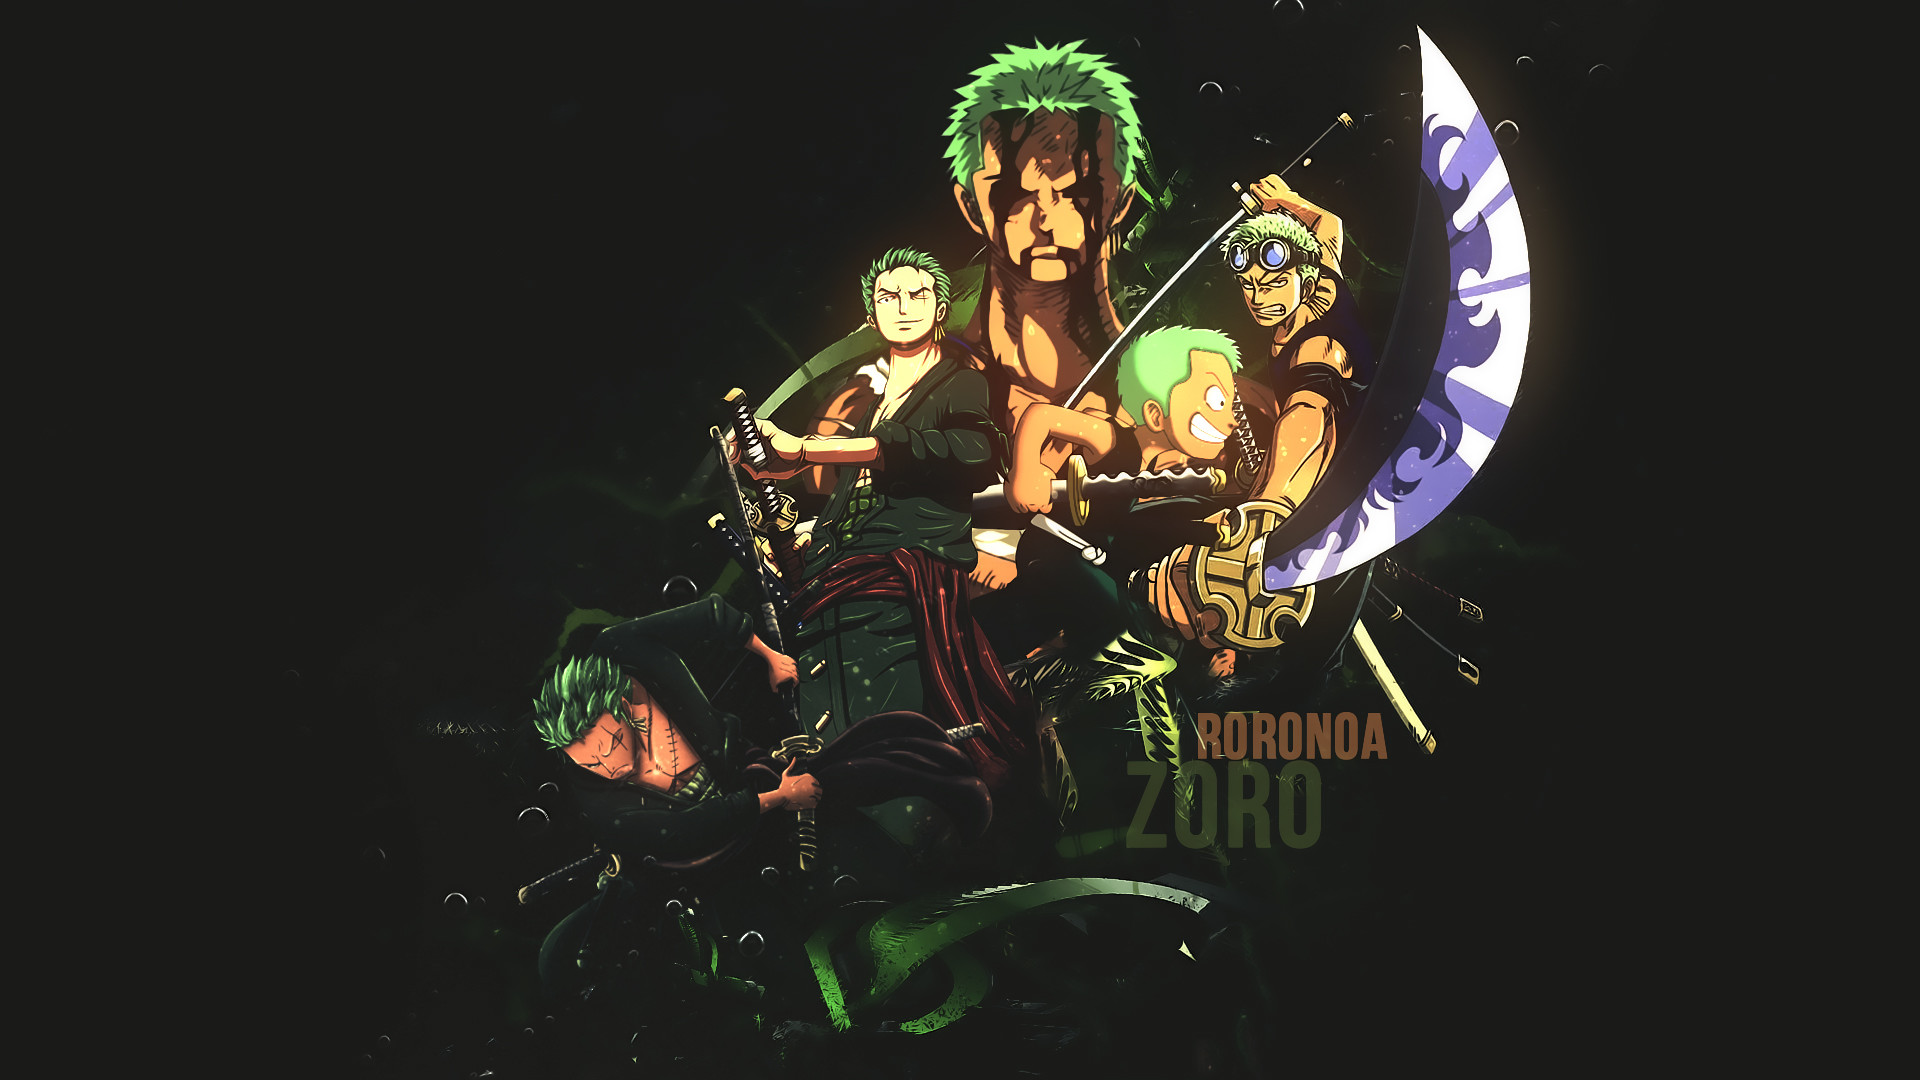 1920x1080 Kick ass Zoro wallpaper